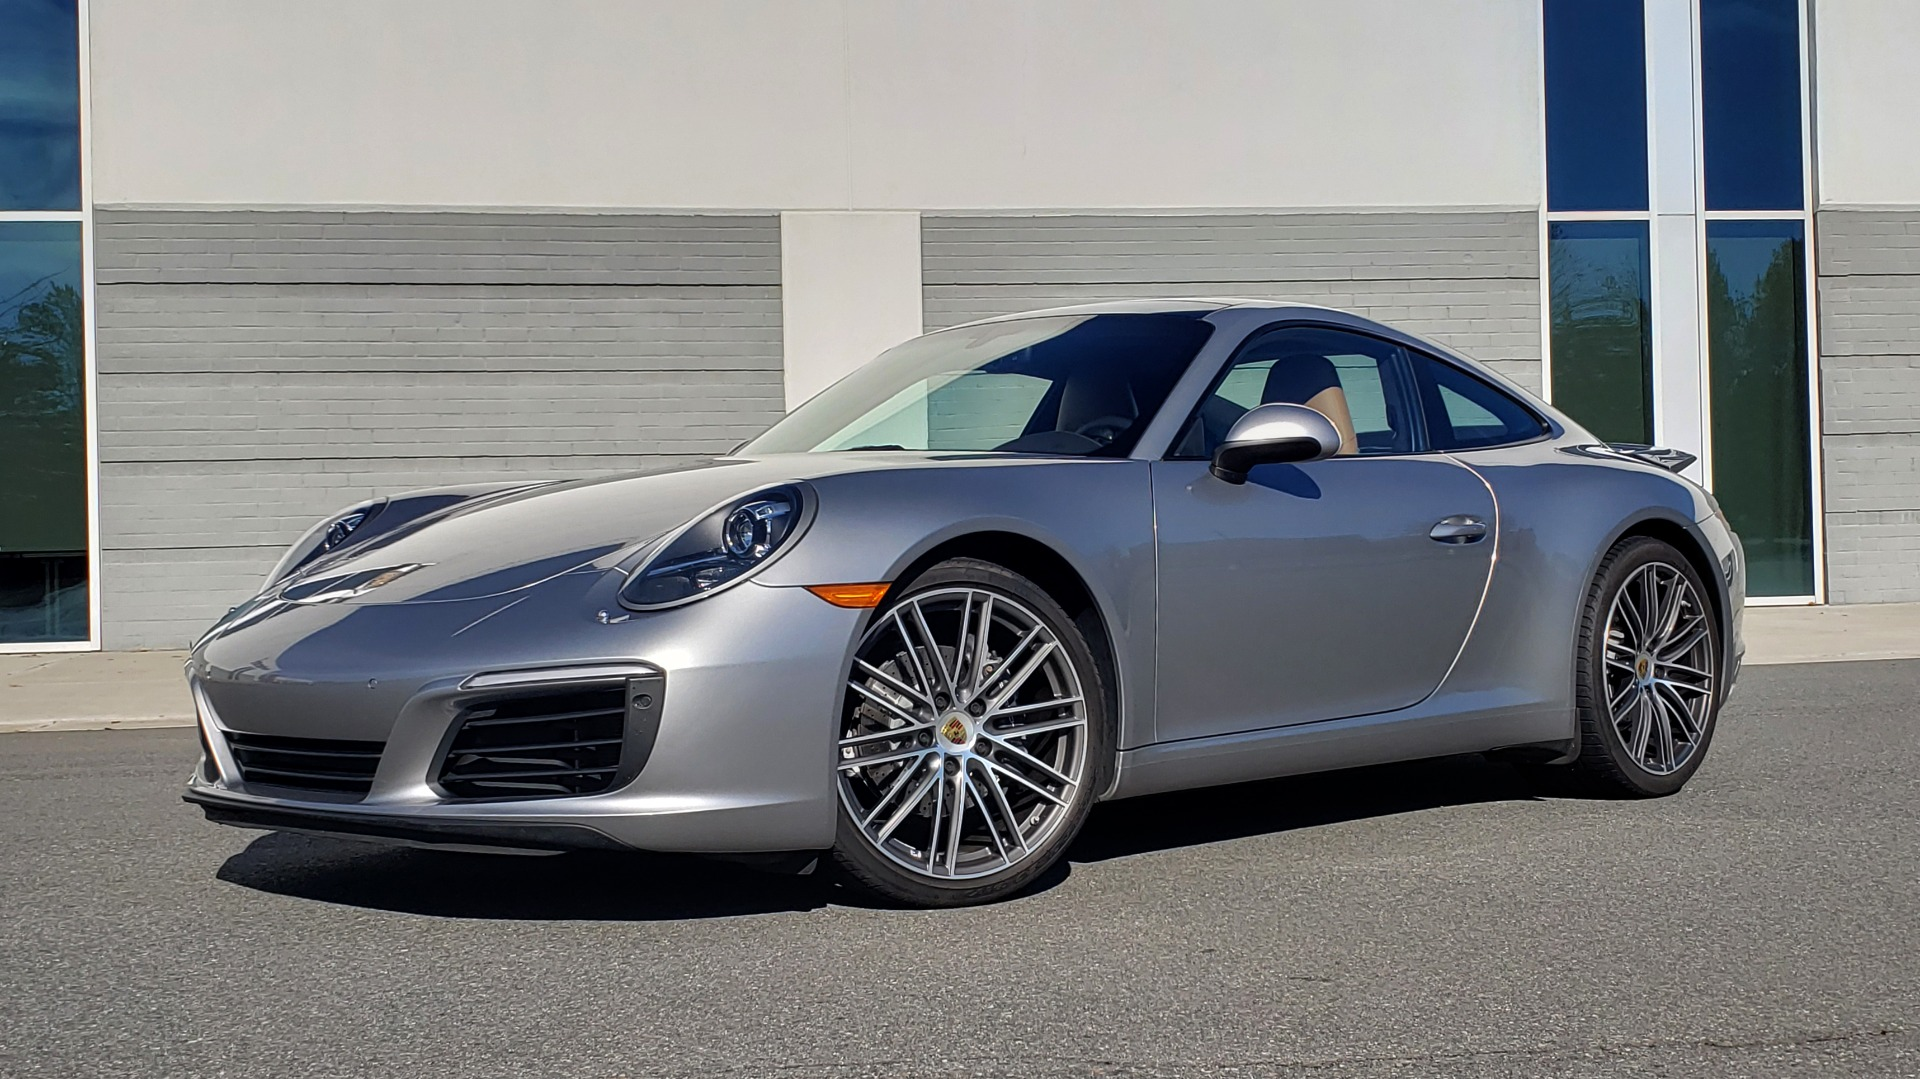 Used 2017 Porsche 911 CARRERA COUPE / 3.0L / 7-SPD MAN / NAV / PDLS / SUNROOF / REARVIEW for sale Sold at Formula Imports in Charlotte NC 28227 1